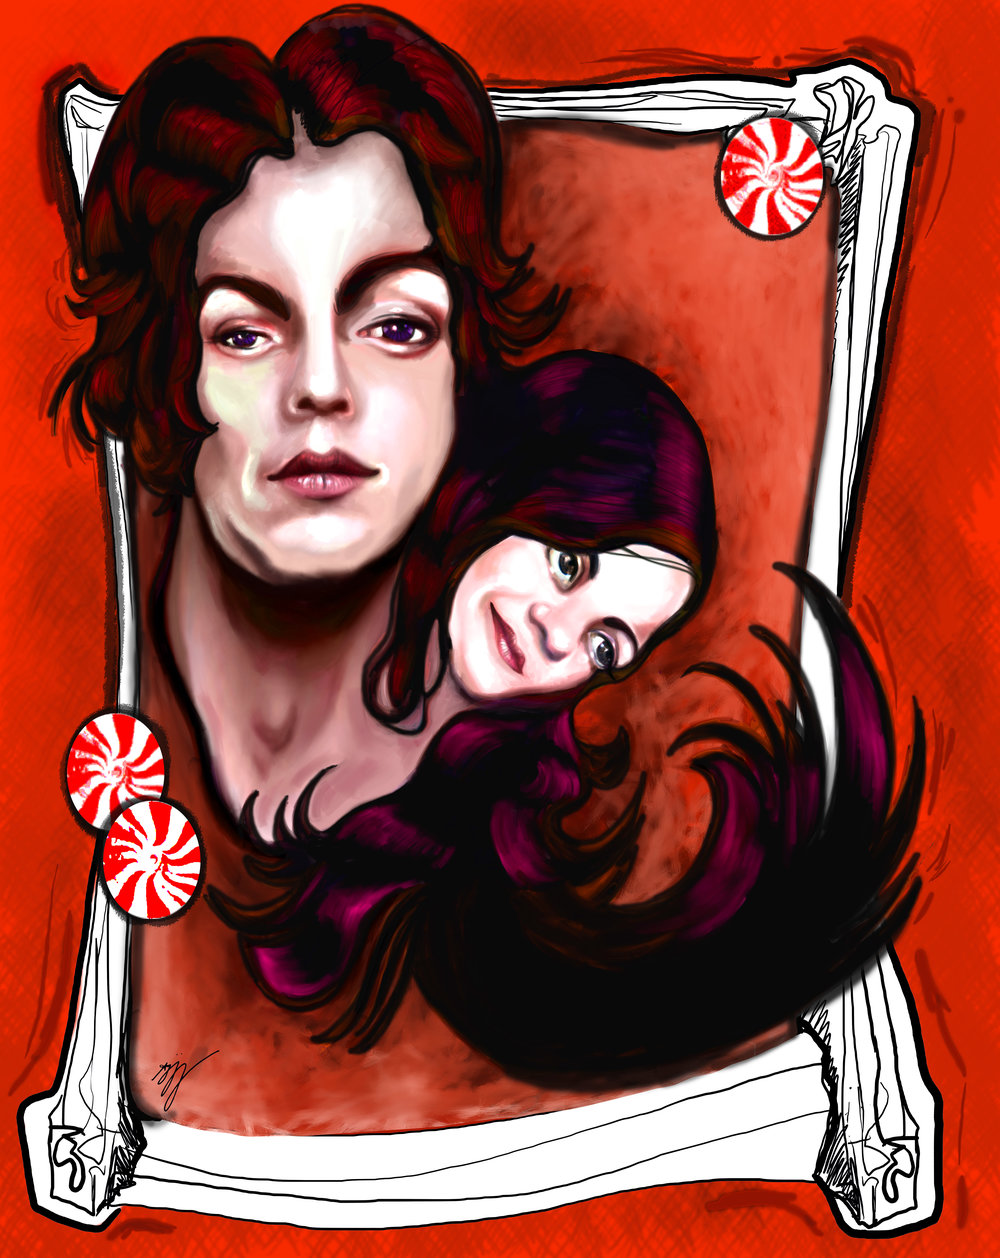 White Stripes Digital Painting 2014 Anjeanette Illustration